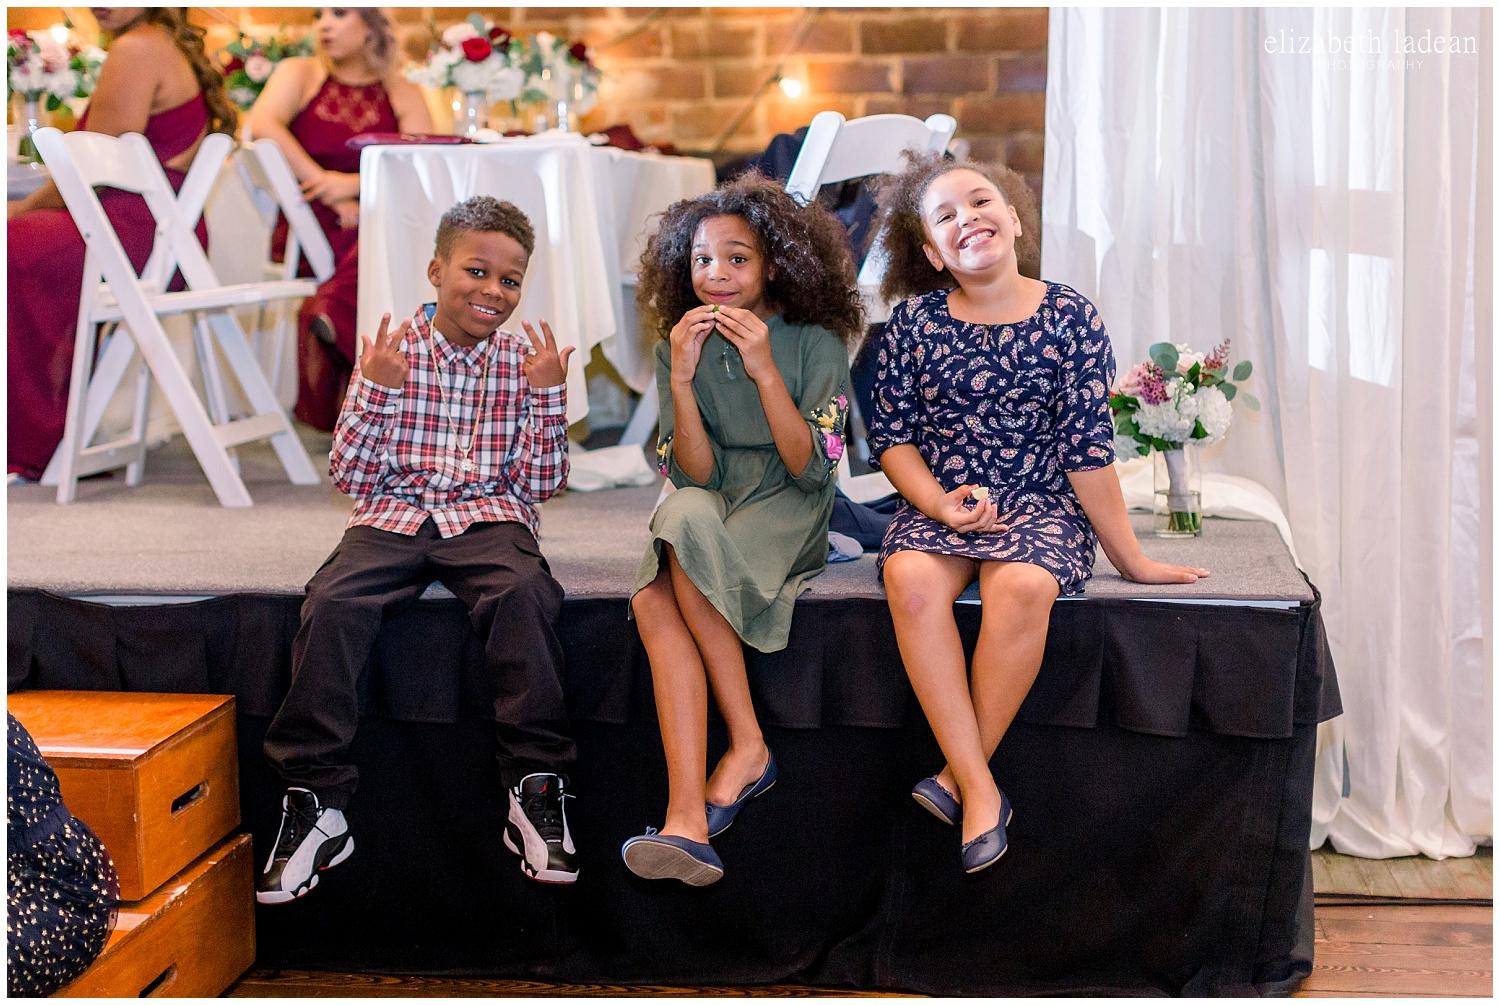 -behind-the-scenes-of-a-wedding-photographer-2018-elizabeth-ladean-photography-photo_3557.jpg